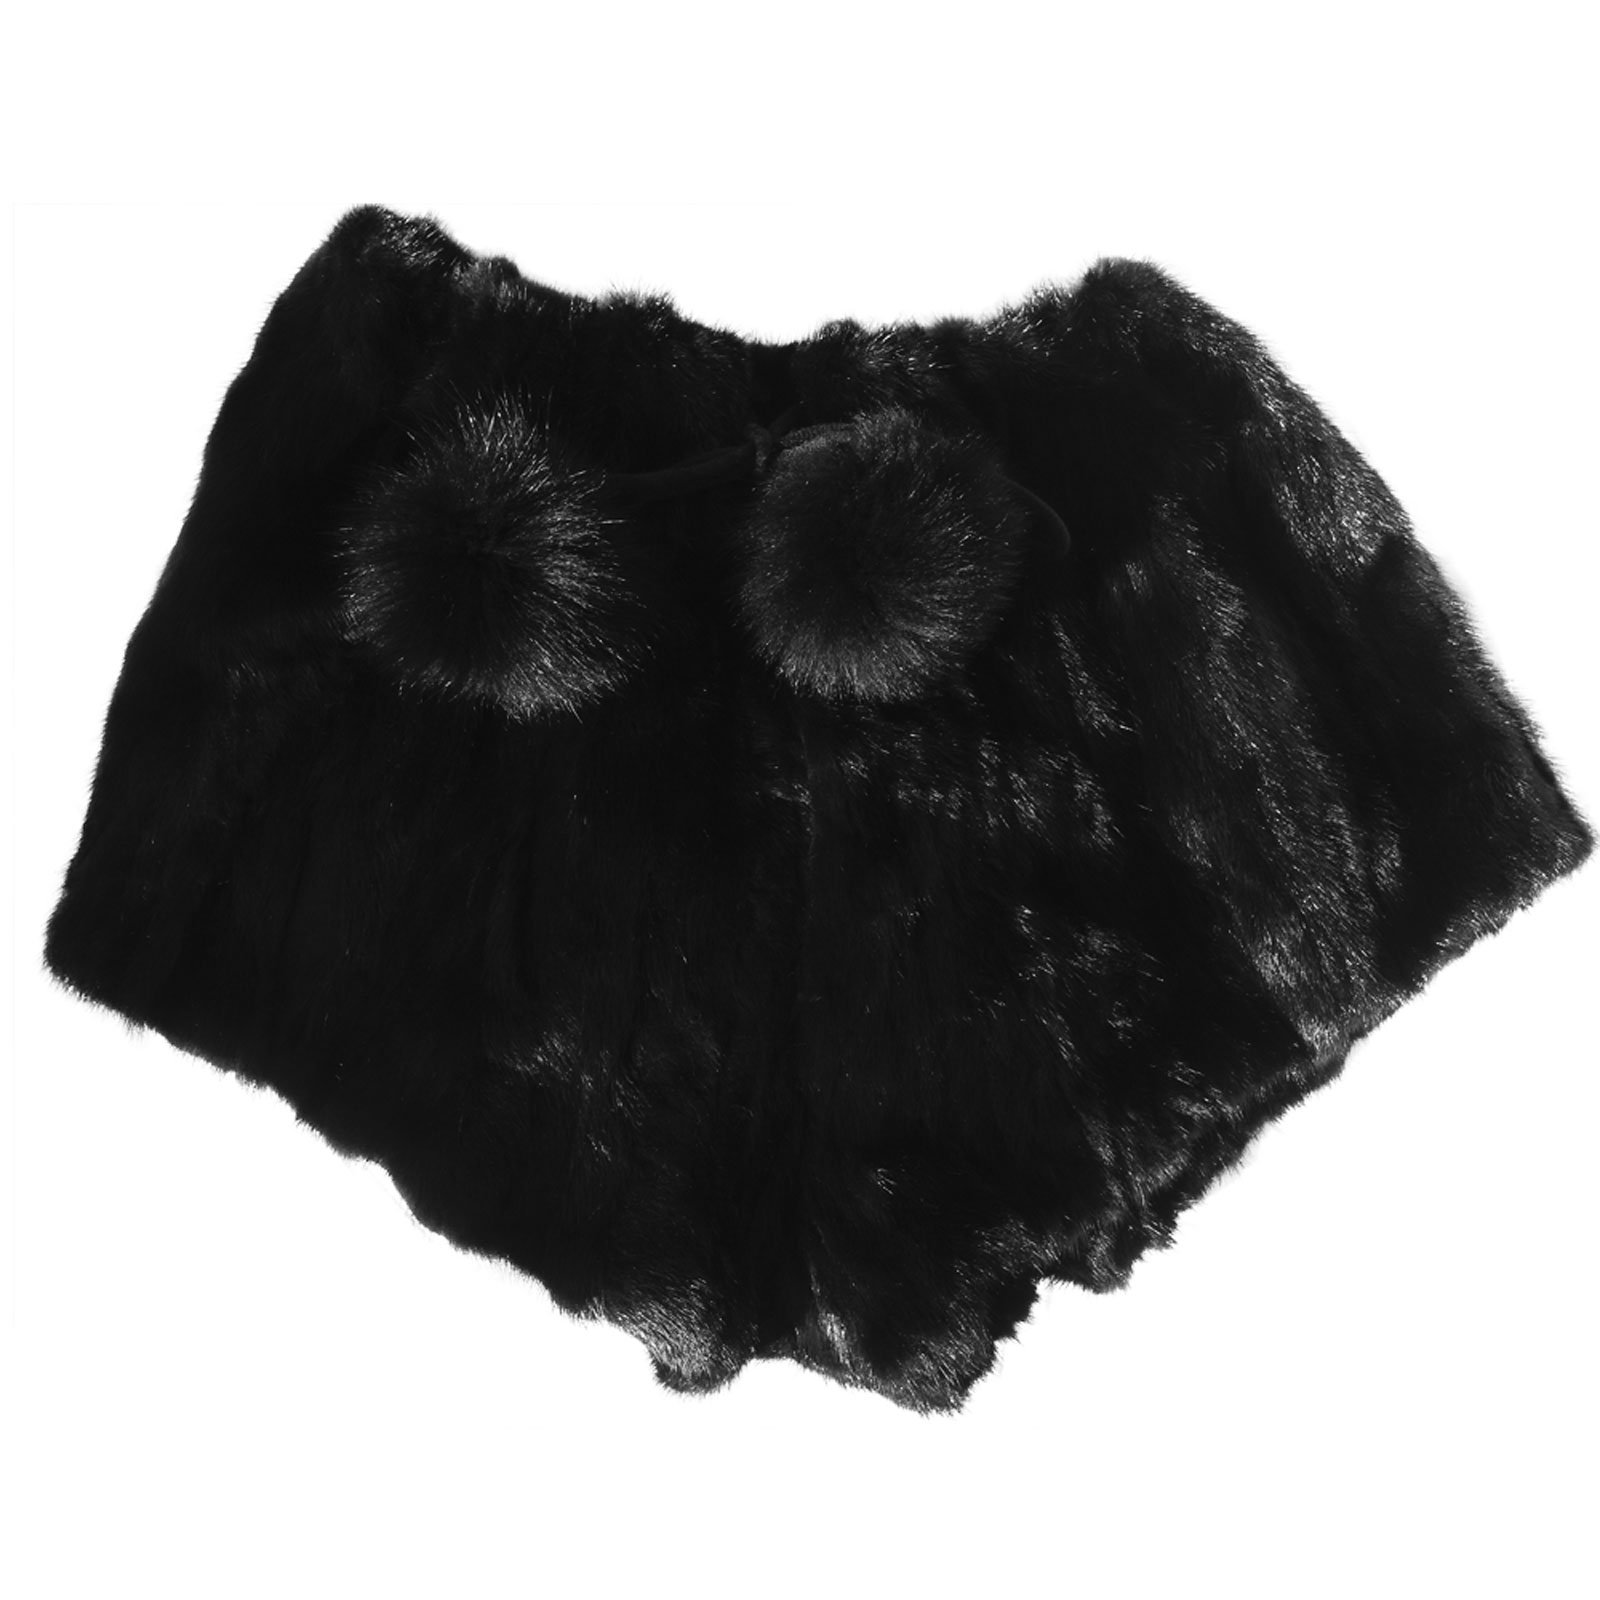 MinkgLove Mink Strips Boxer Shorts Briefs Underwear, Silky Smooth and Textured Feel, Fur Lined Fly, Black, Hand Tailored, One Size - Single Sided Fur